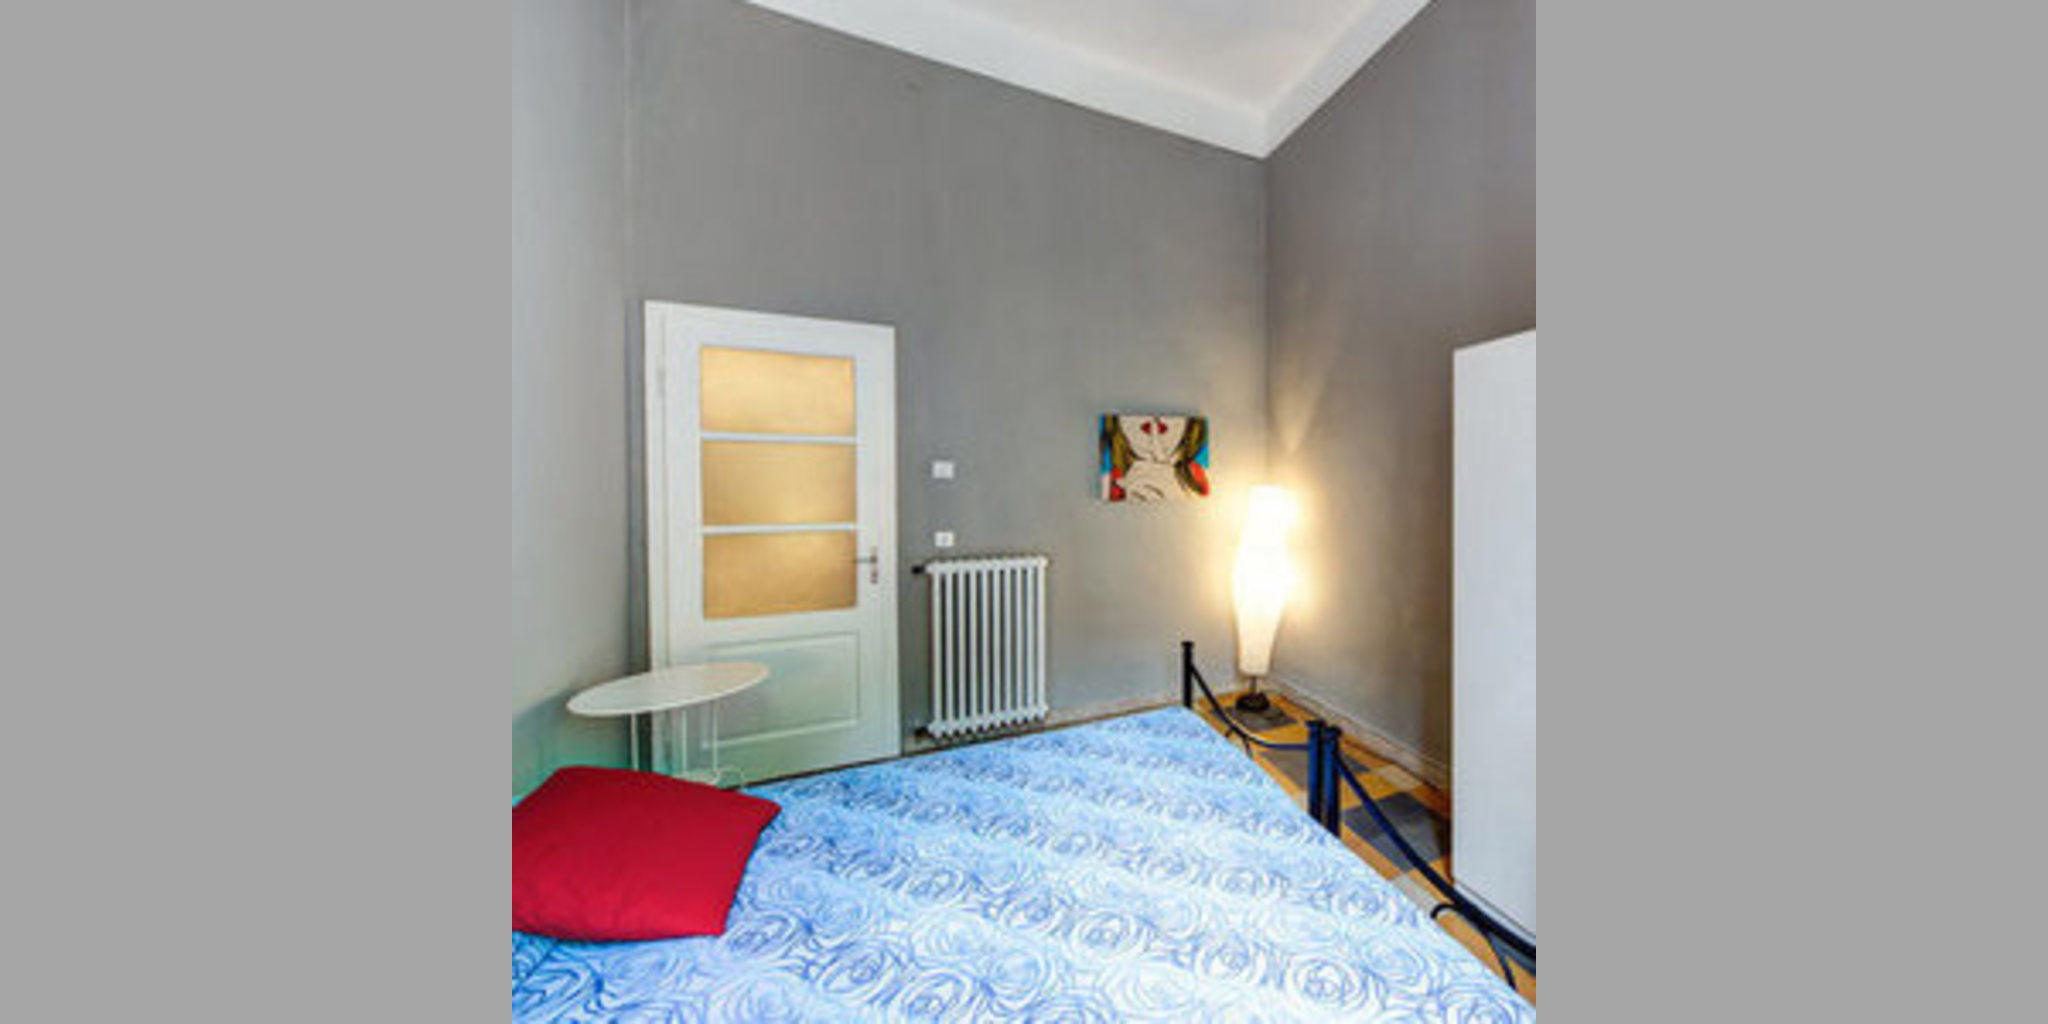 Apartment Verona - Verona_Mazza